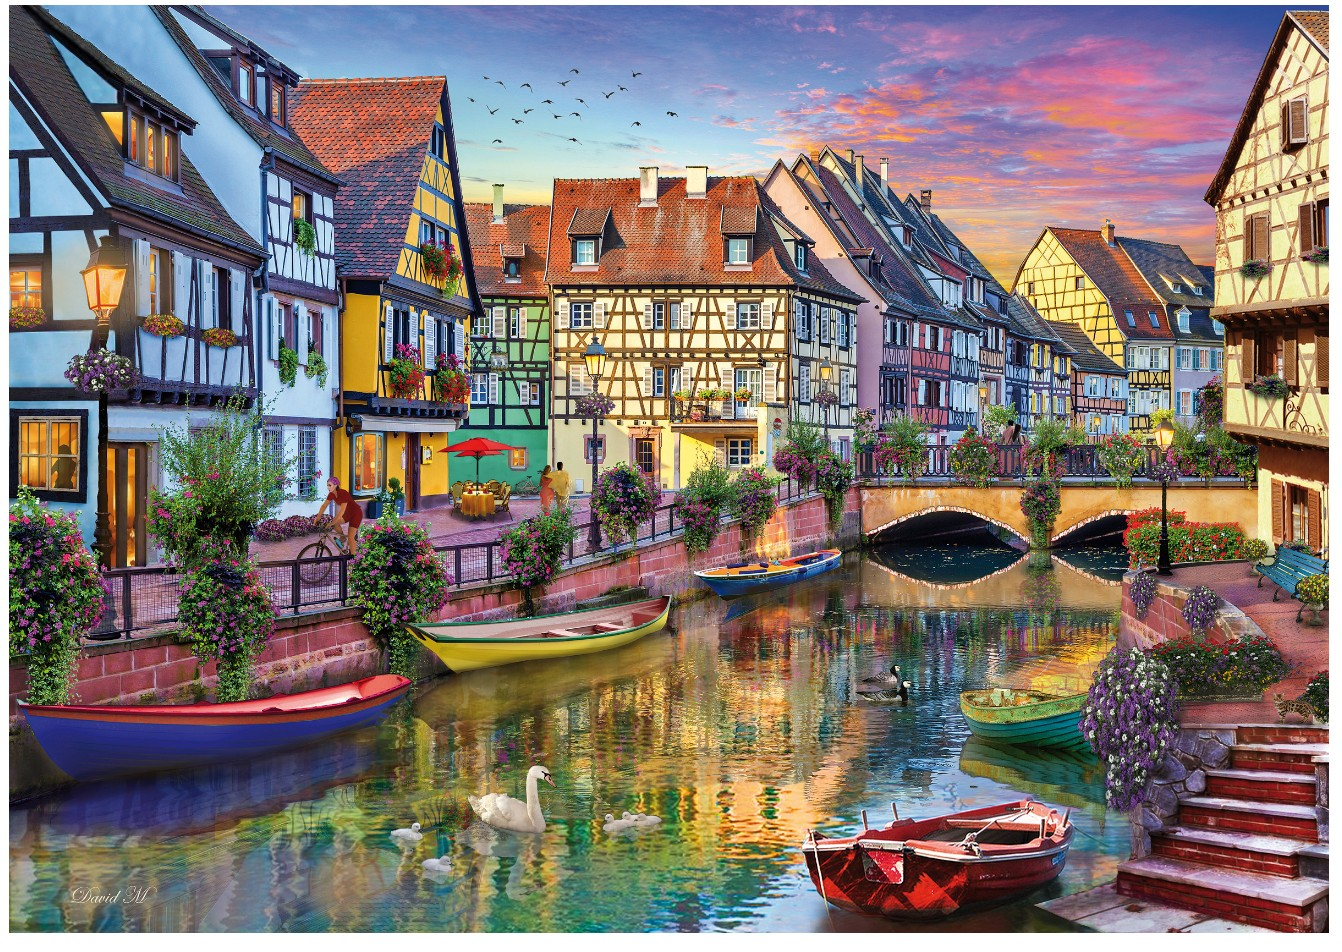 wentworth-holzpuzzle-colmar-canal-250-teile-puzzle-wentworth-792002